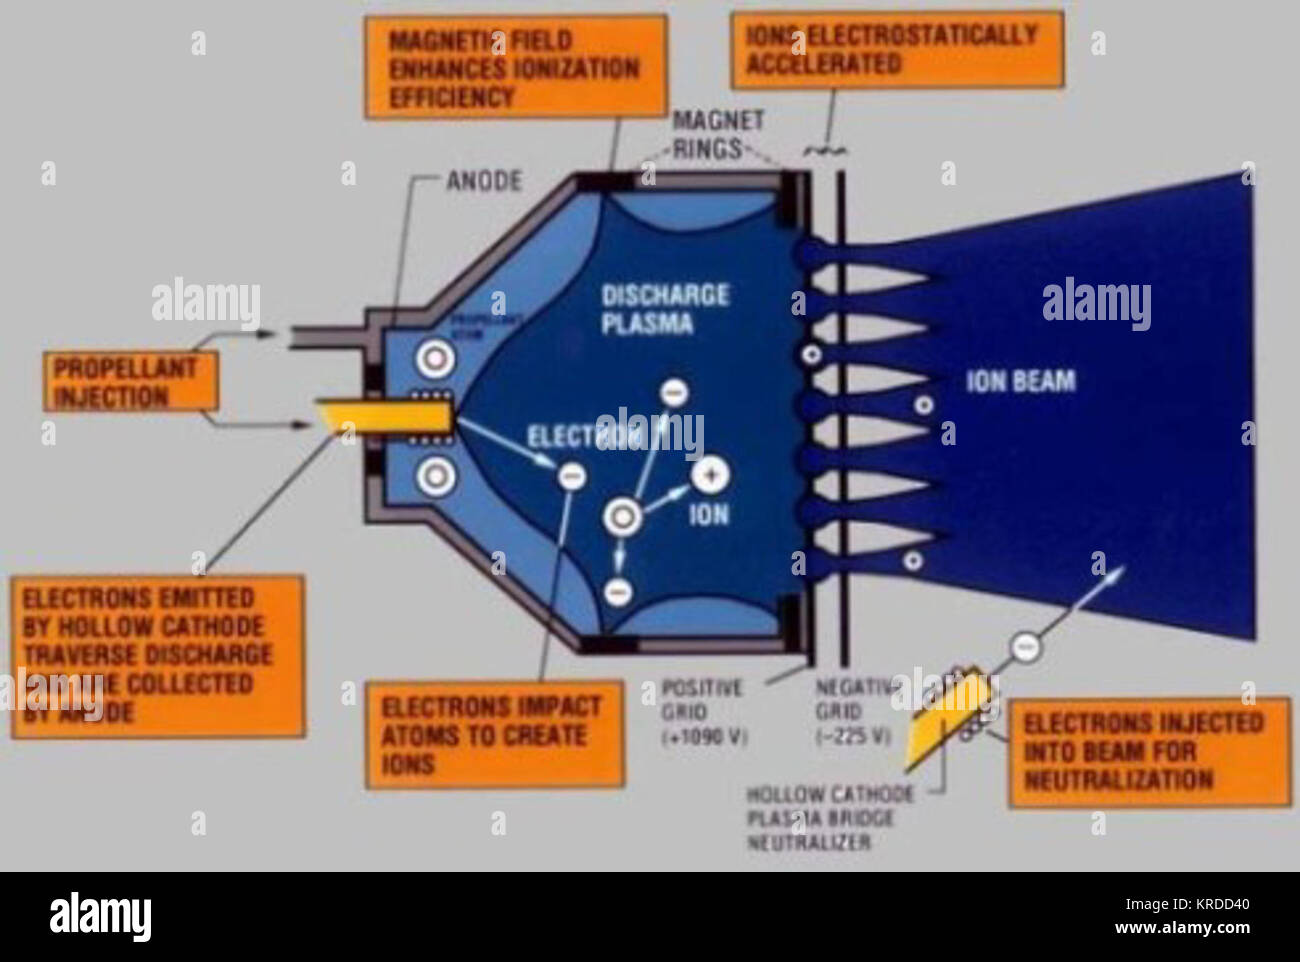 hight resolution of ds1 ion engine diagram stock photo 169326080 alamy rh alamy com 2003 saturn ion engine diagram ion thruster diagram